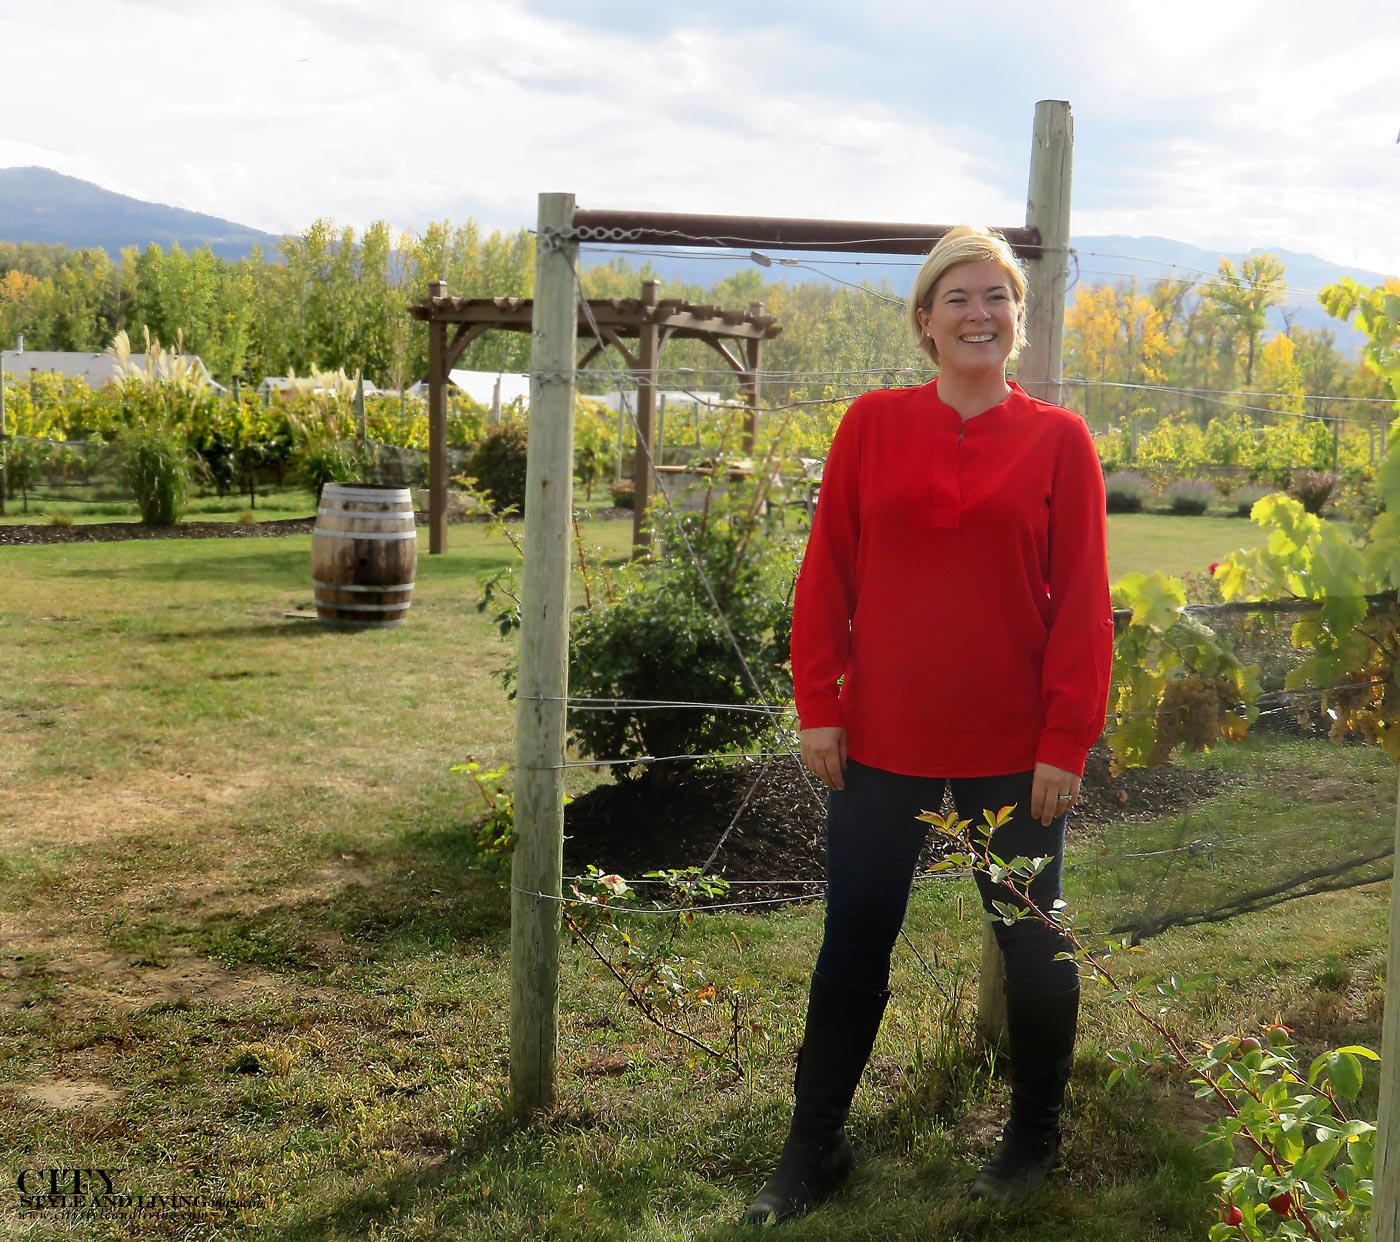 Ann Sperling of Sperling Vineryards in City Style and Living Magazine.